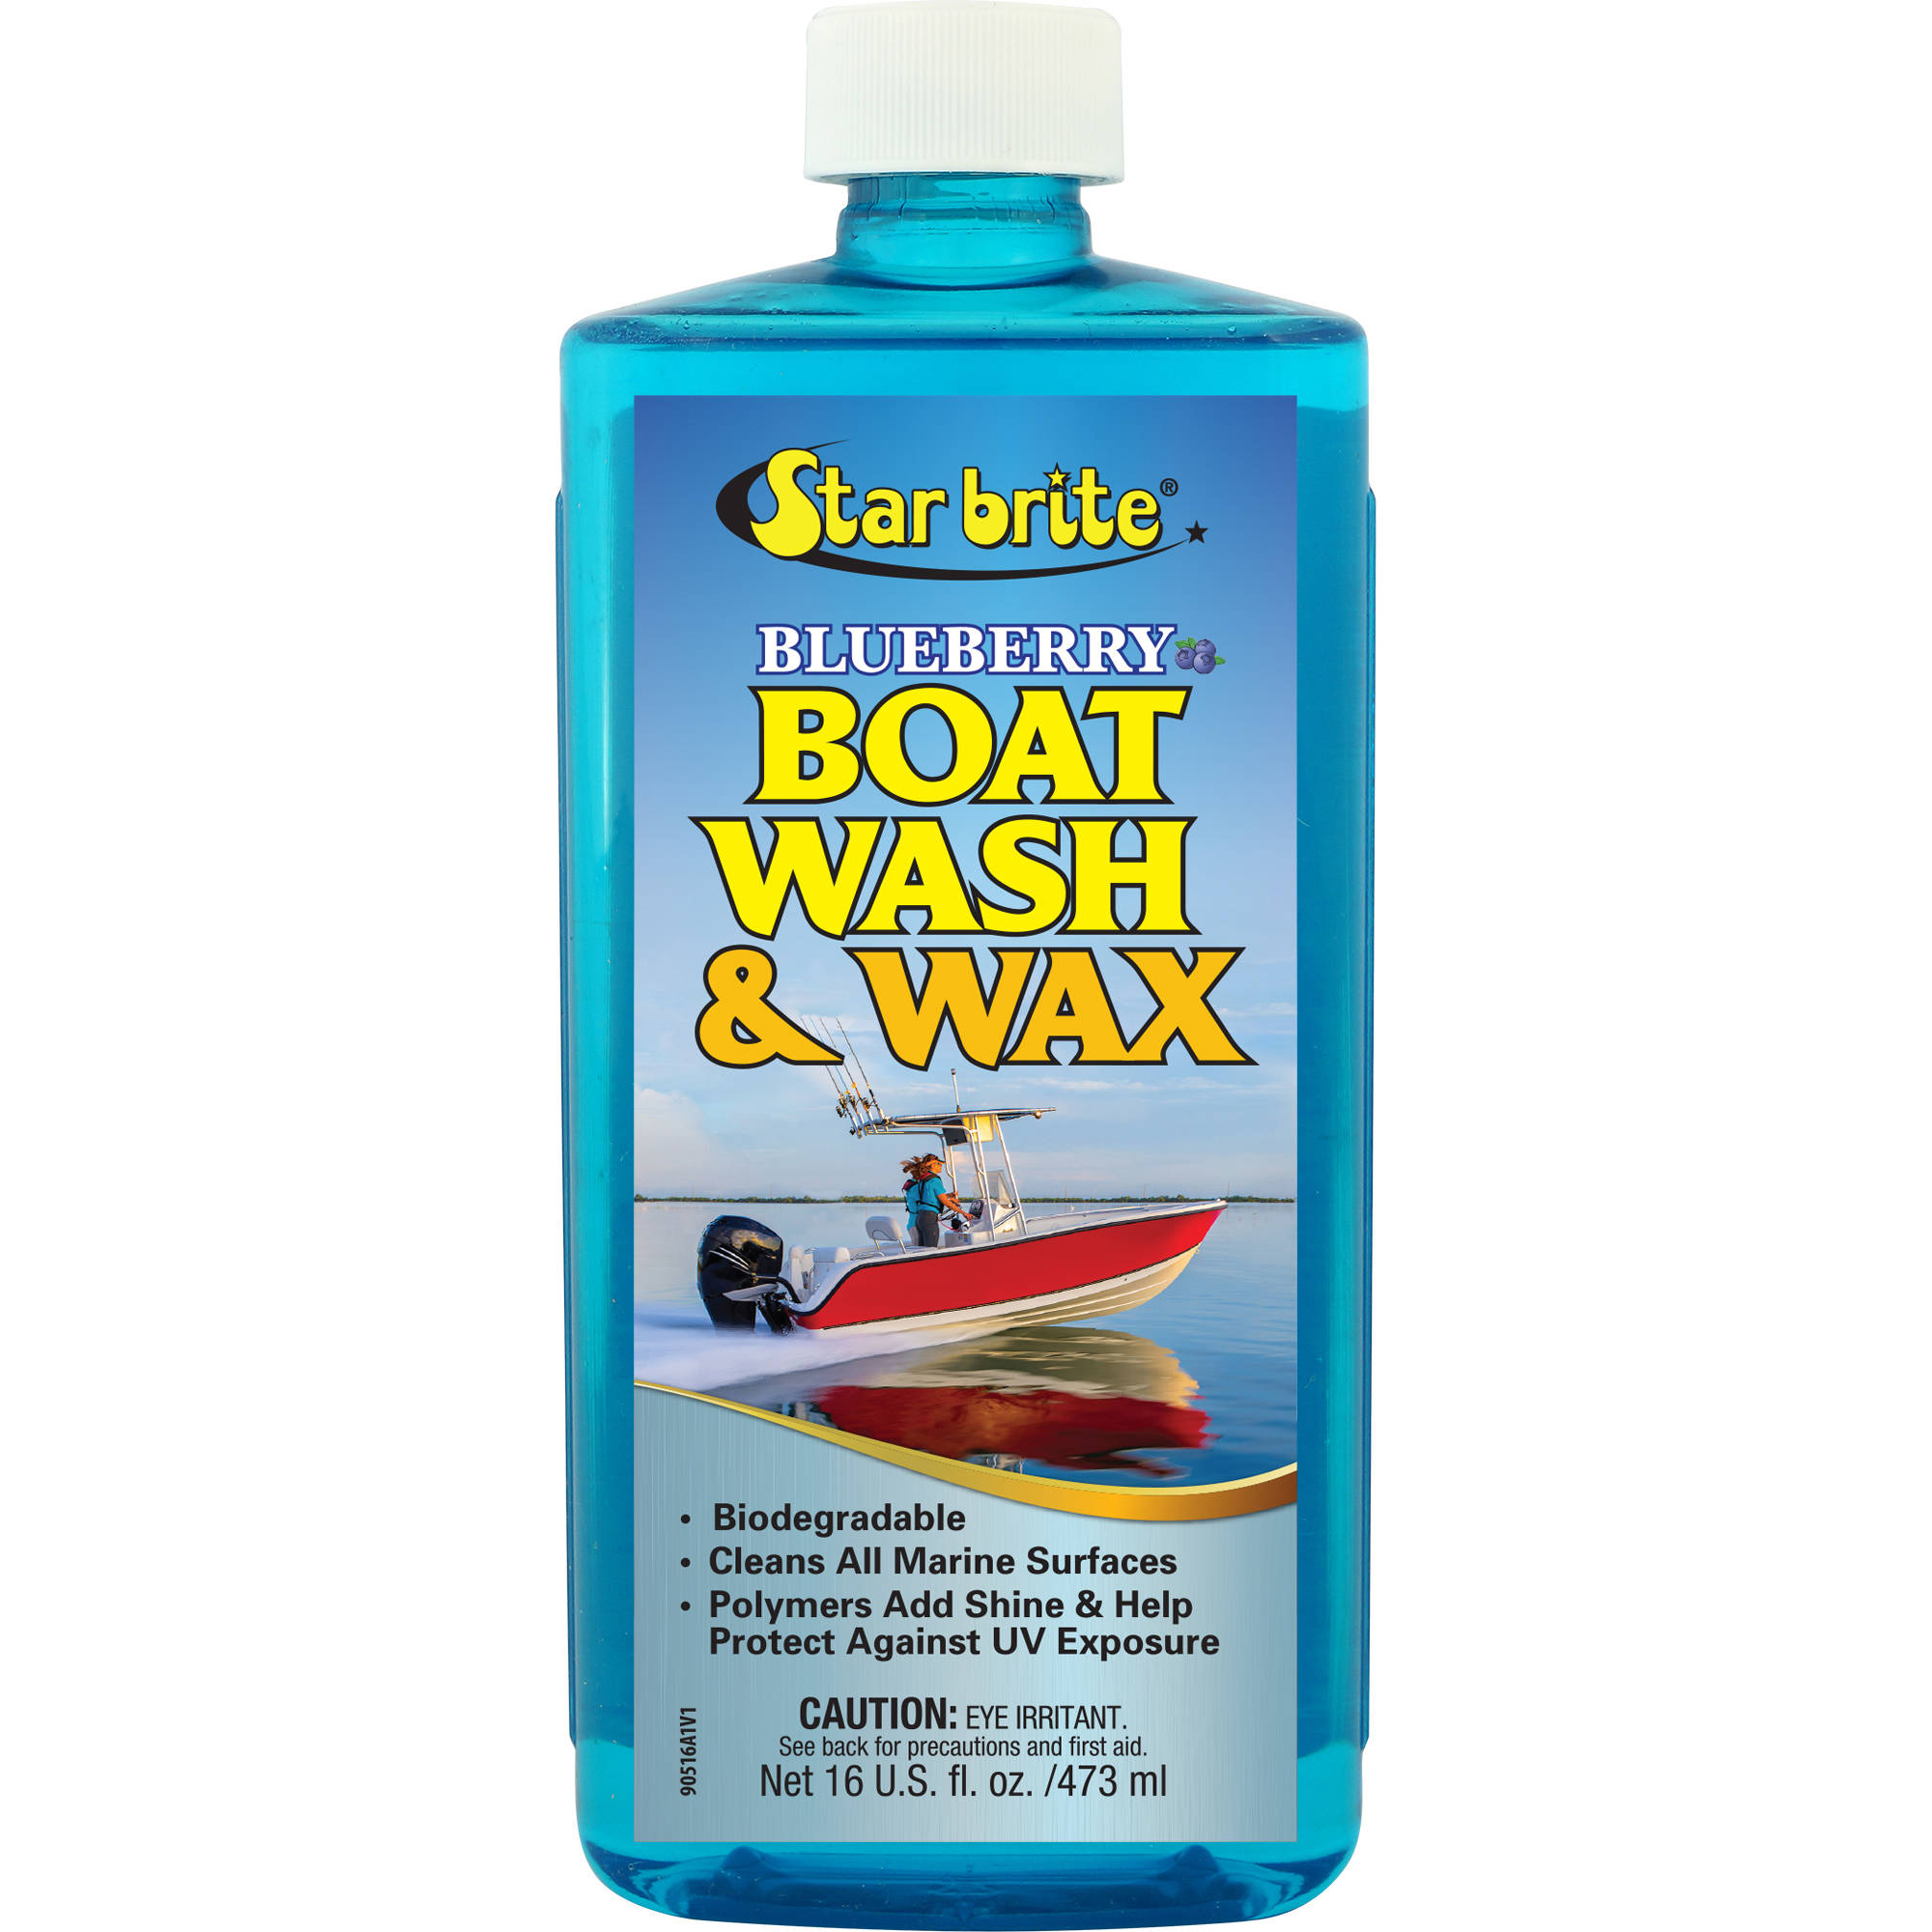 Star Brite Blueberry Boat Wash and Wax, 16 oz